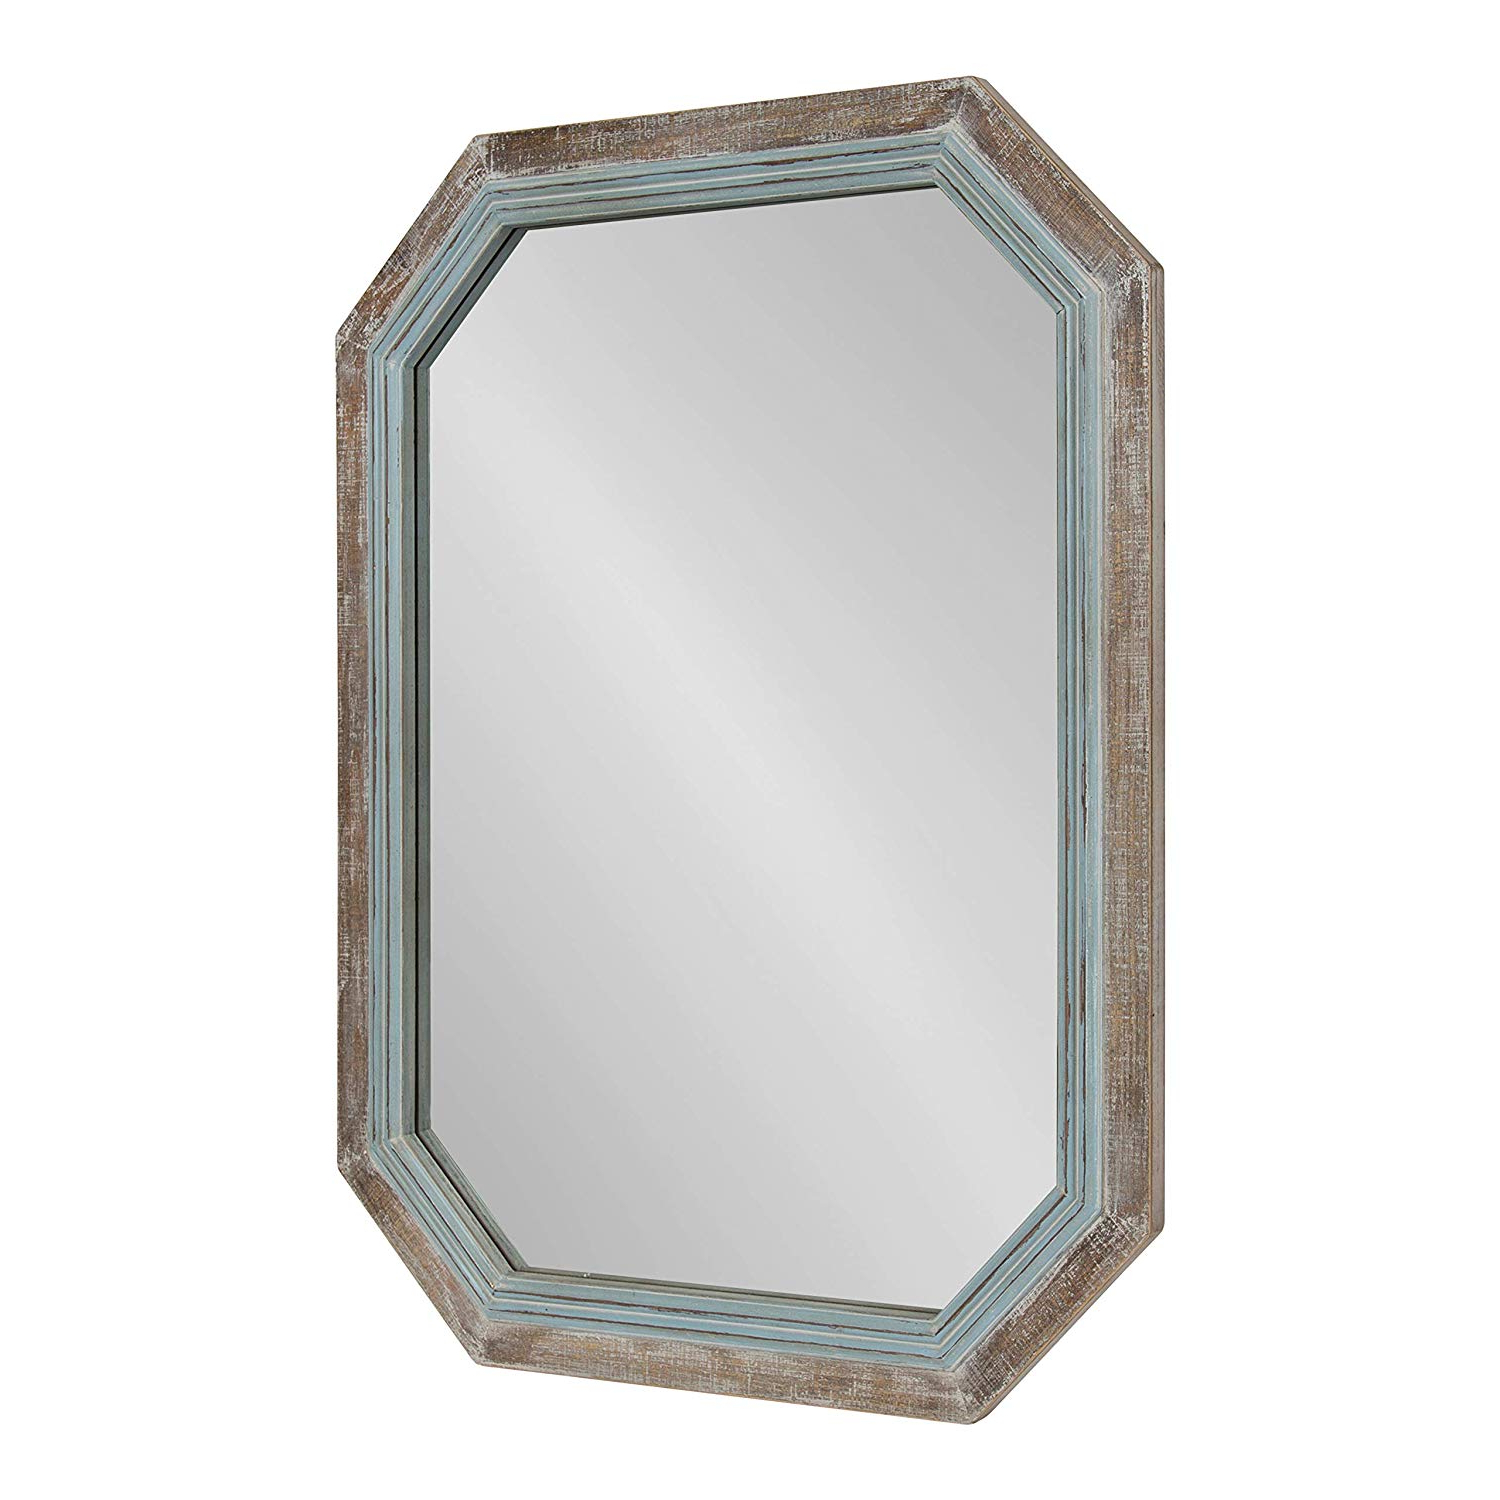 Latest Coastal Style Wall Mirrors Intended For Kate And Laurel Palmer Large Rustic Farmhouse Wooden Octagon Wall Mirror, Distressed Two Tone Coastal Blue And Natural, 36x (View 2 of 20)